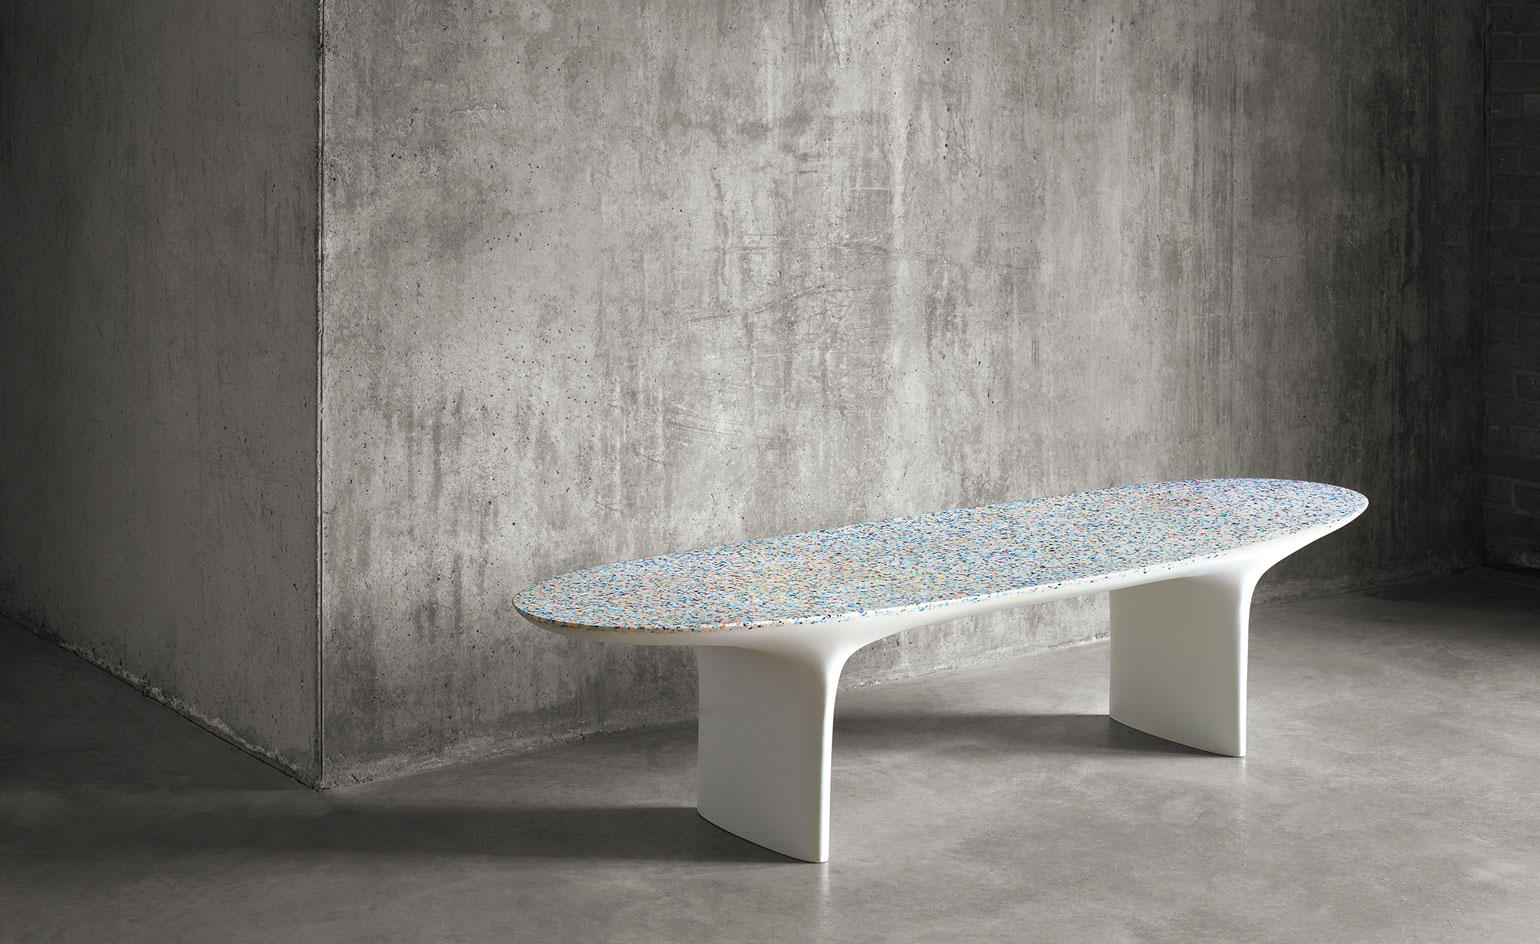 Brodie Neill's Gyro table, created sustainably from ocean plastic waste